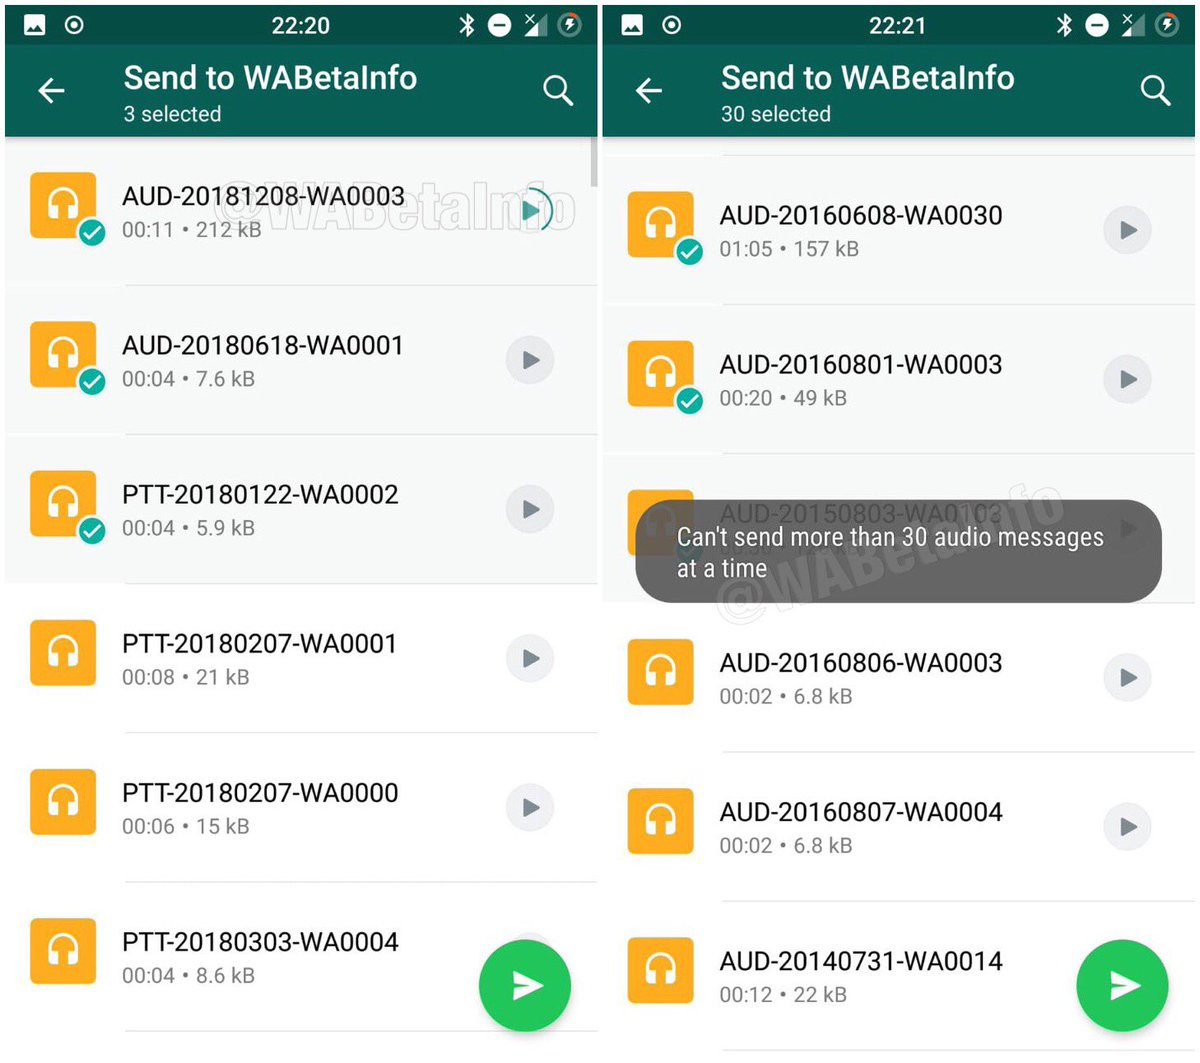 WhatsApp is working on a new redesigned section to send audio files to contact list. It supports audio preview and image preview of the audio file (if available). Max 30 audio messages at a time can be sent.